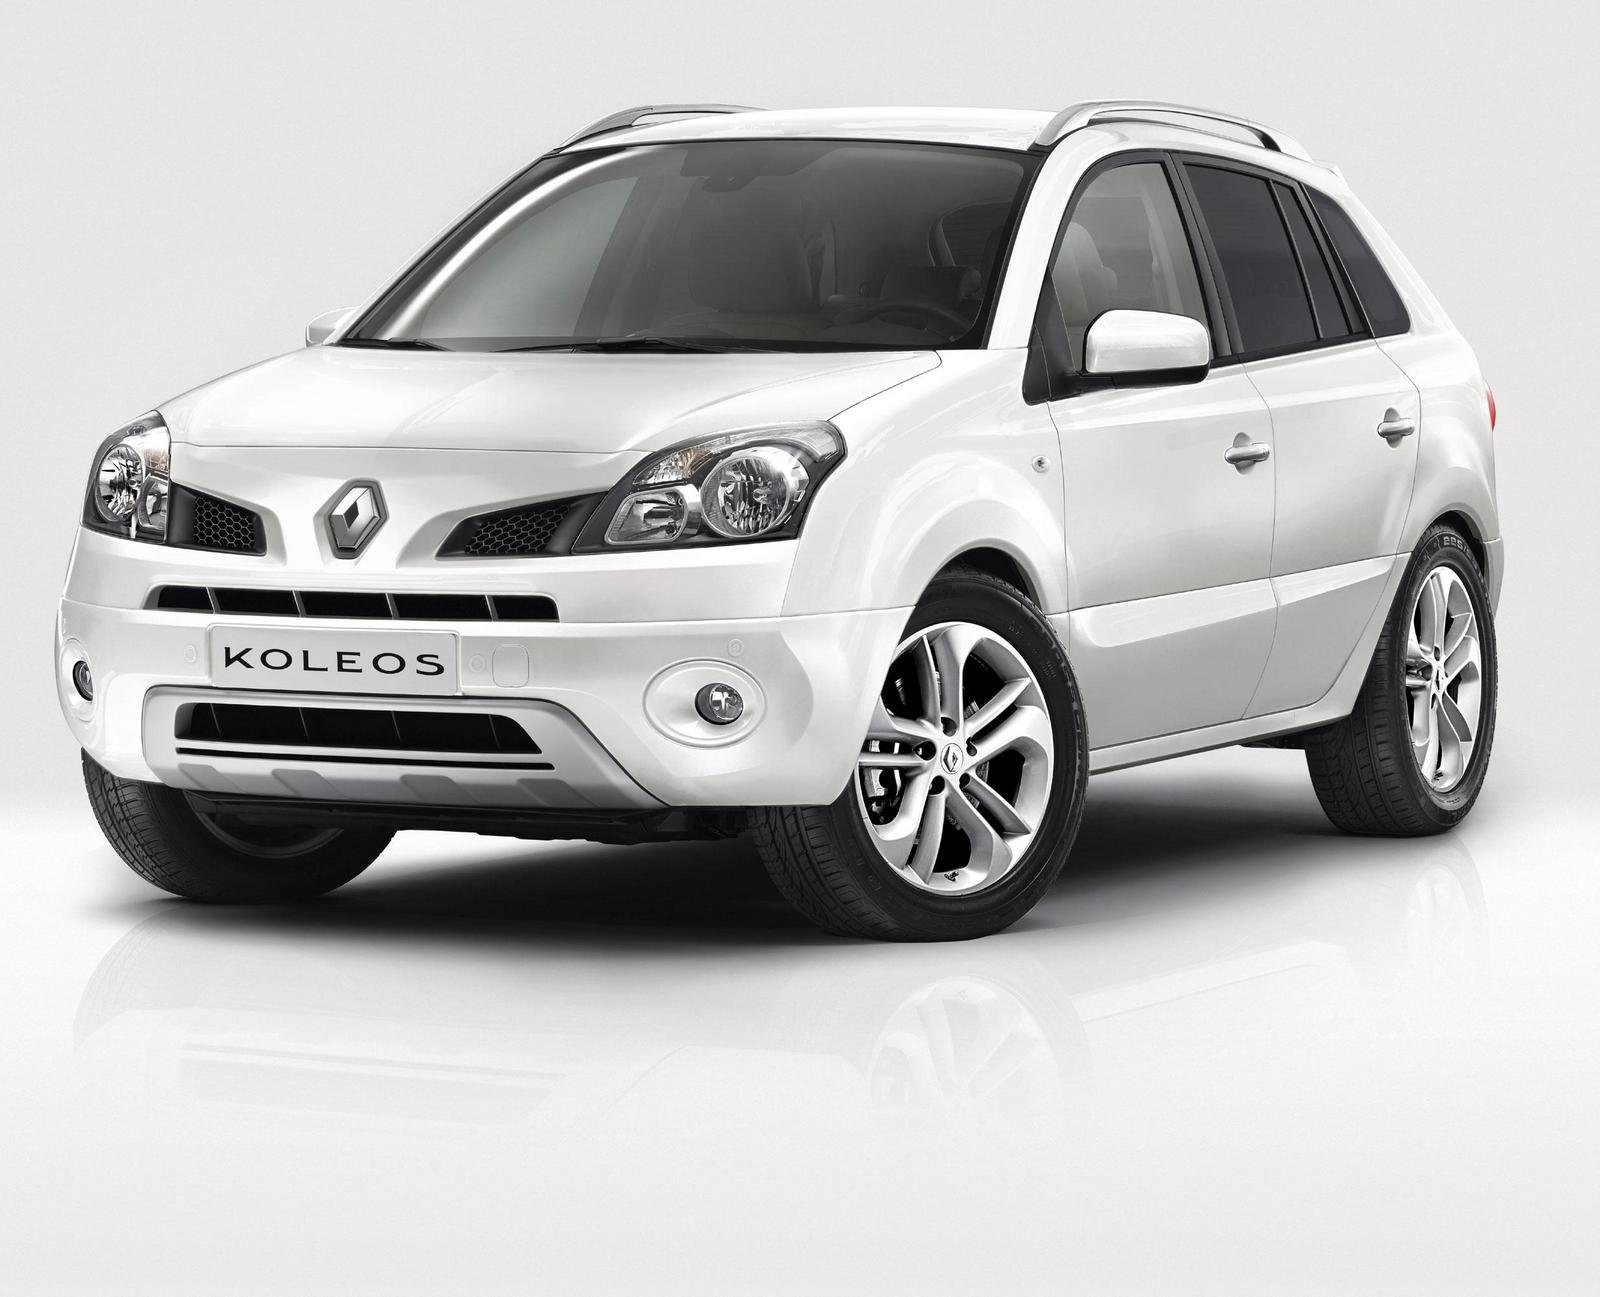 2010 renault koleos white edition picture 318940 car review top speed. Black Bedroom Furniture Sets. Home Design Ideas